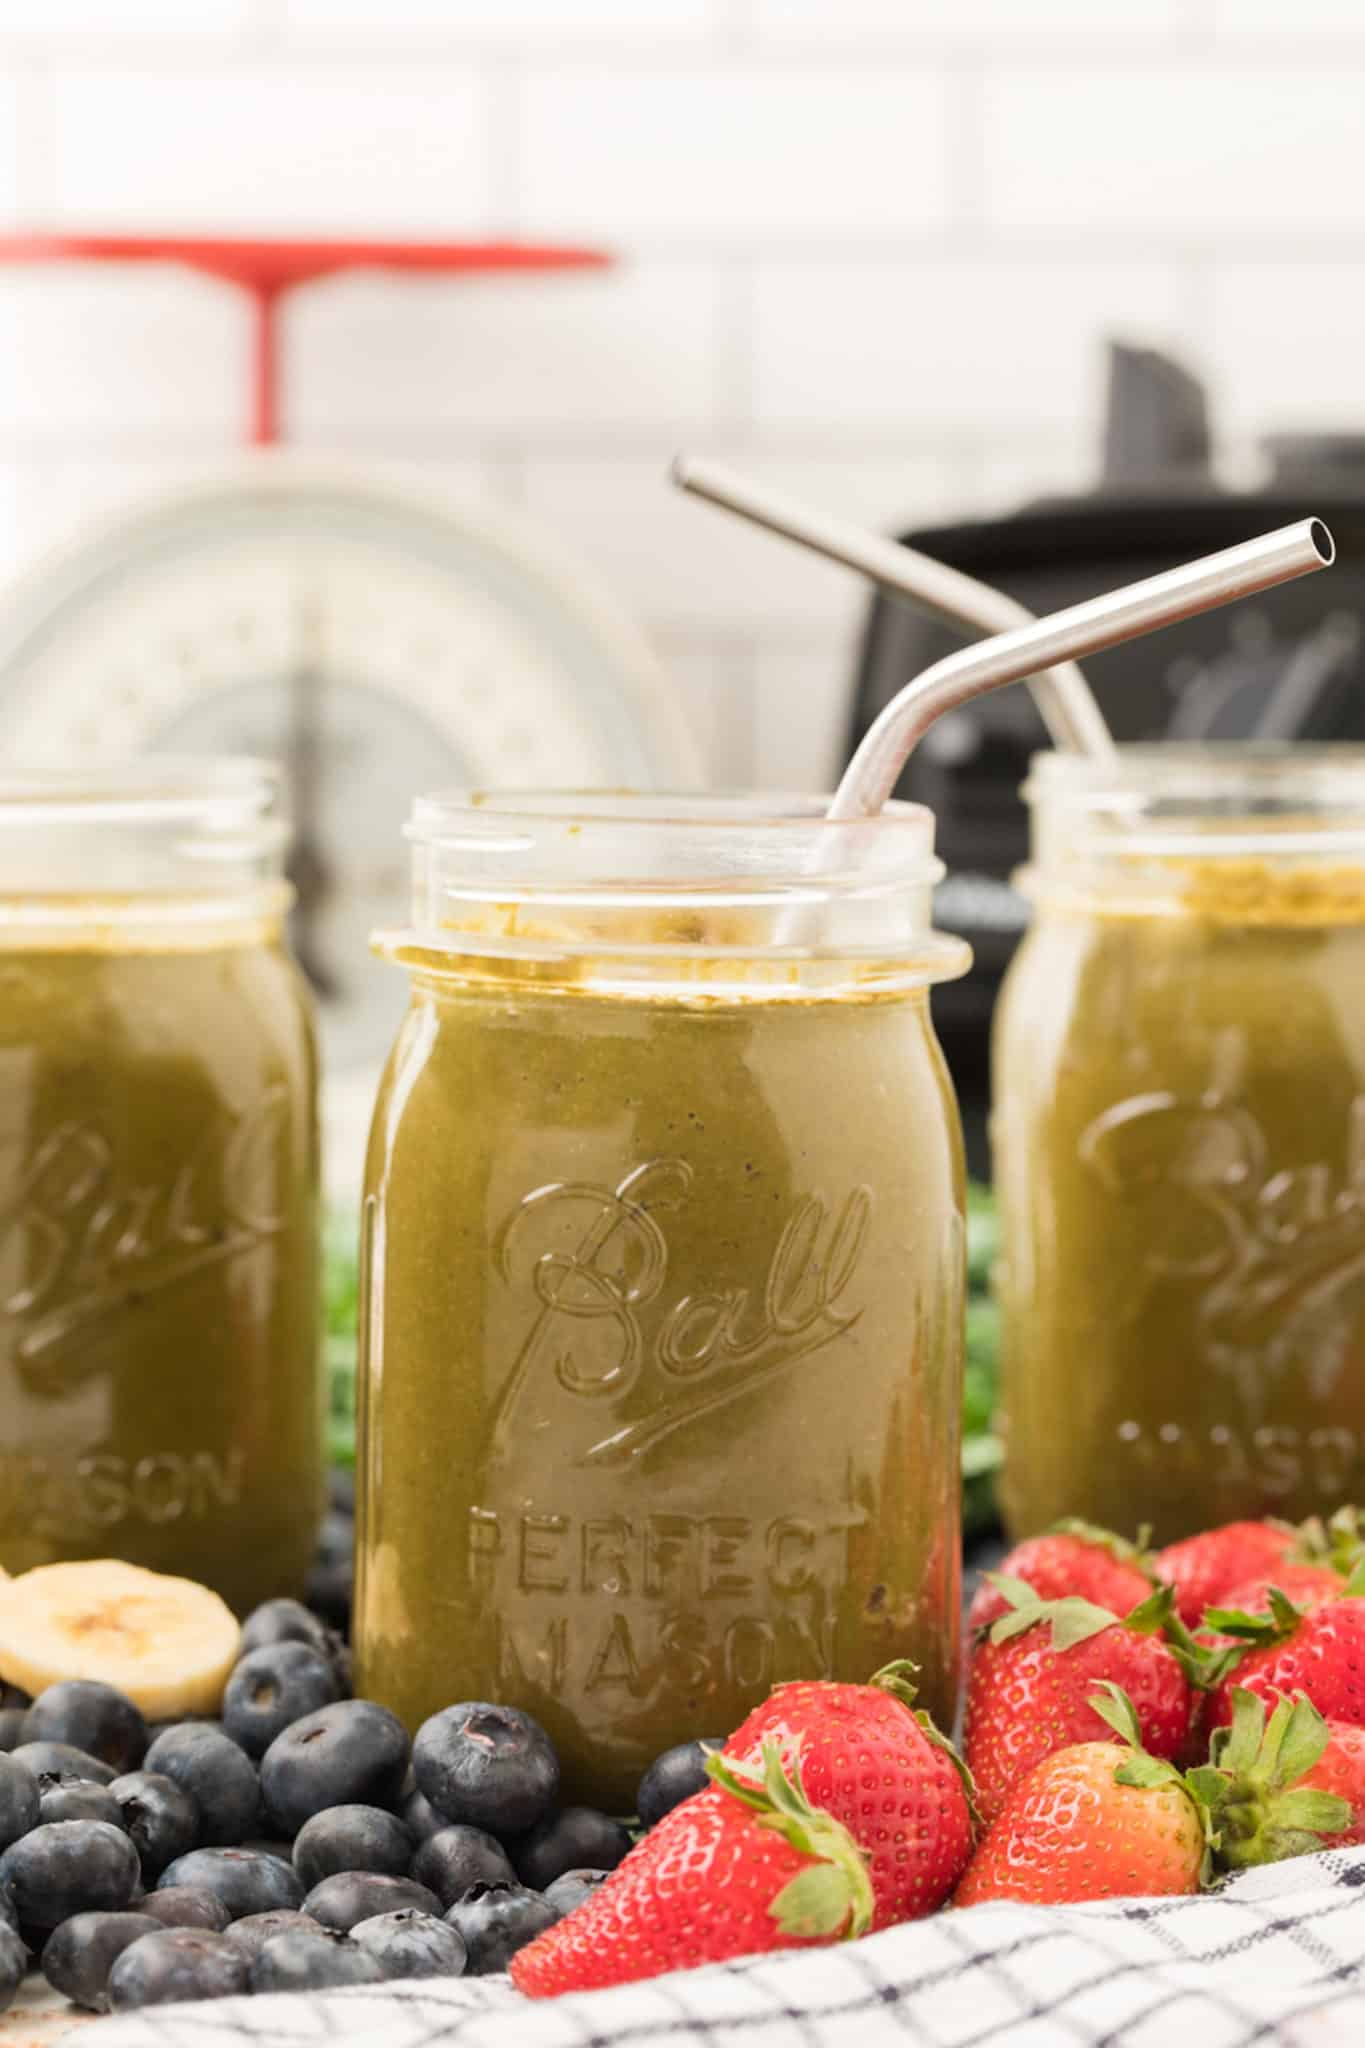 Berry kale smoothies served in three ball jars